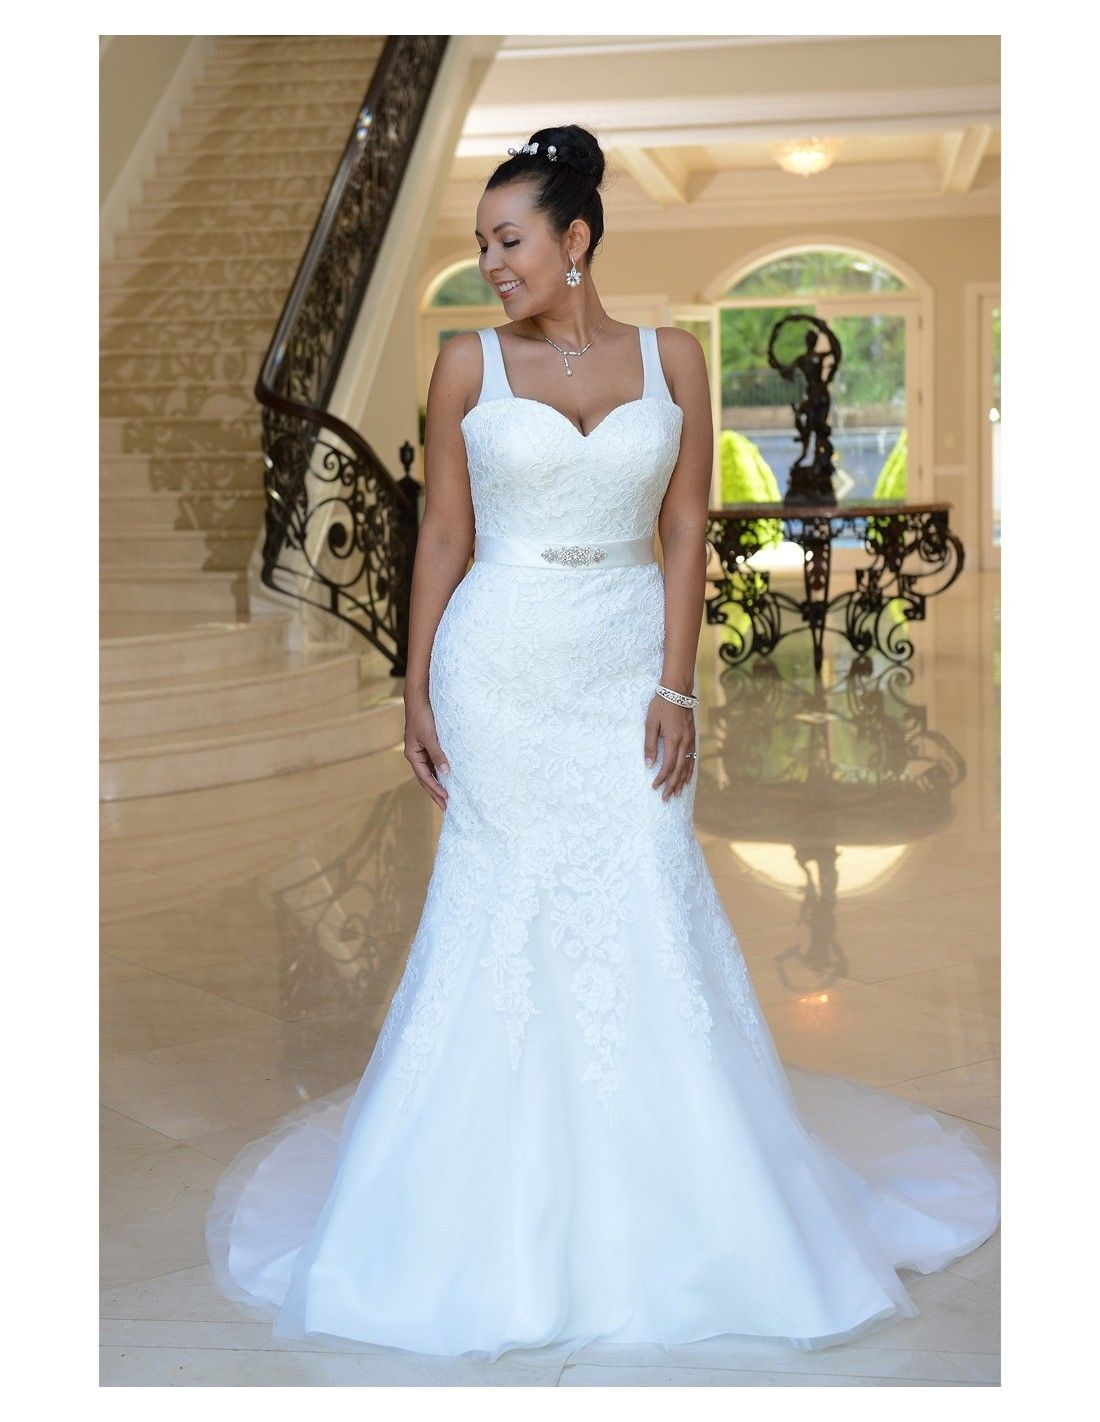 Simple lace fit n flare available at Spotlight Formal Wear! #SpotlightBridal